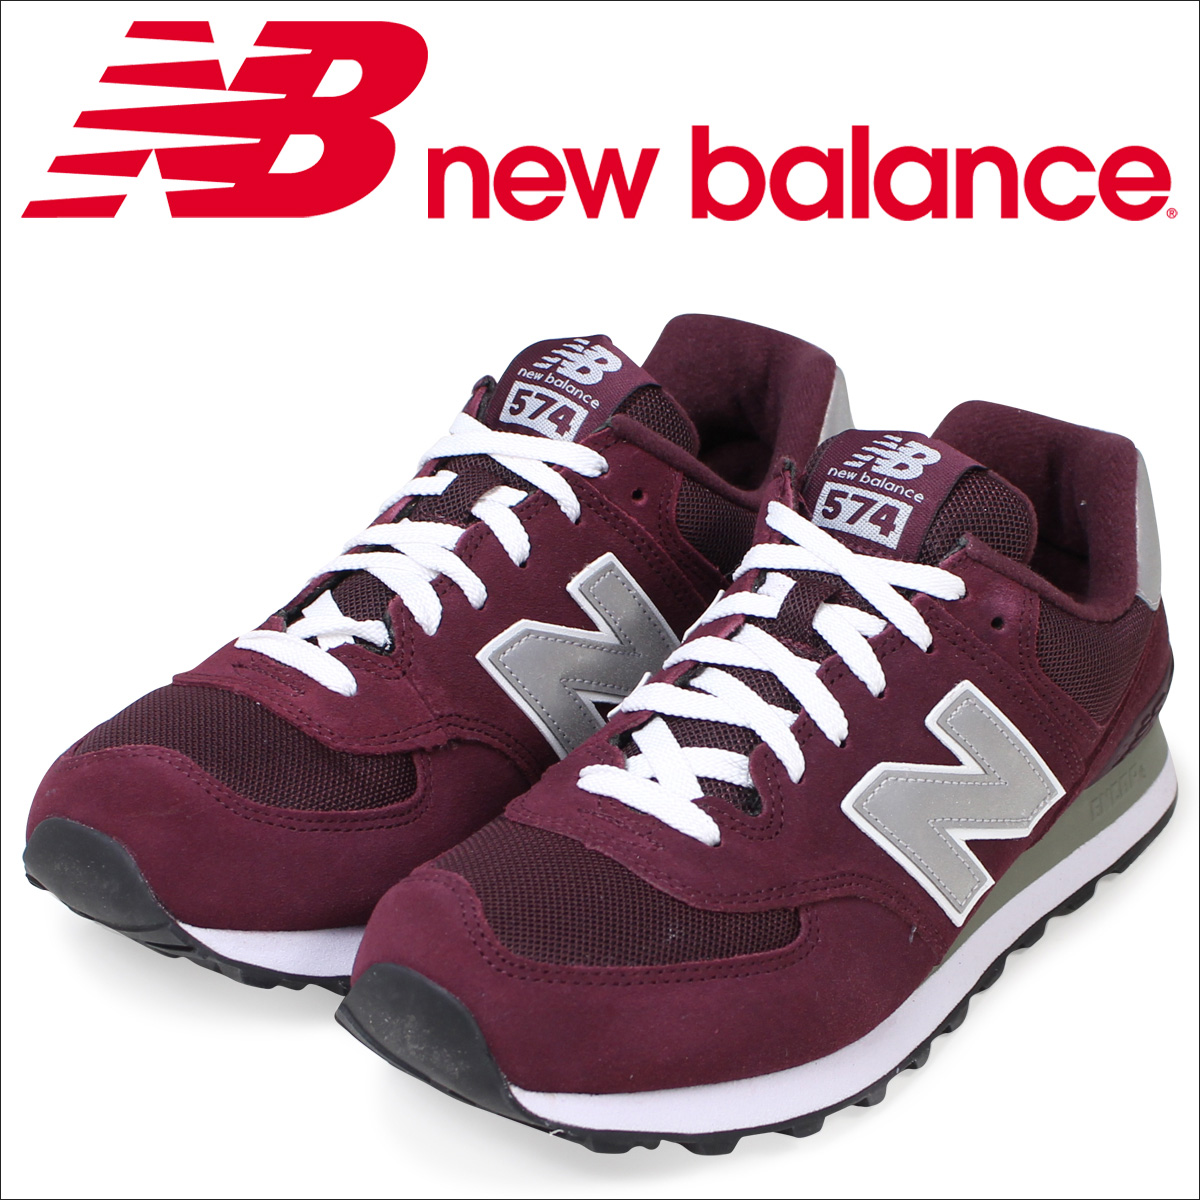 84519b44eacb New Balance 574 men u0027s new balance sneakers M574NBU D Wise shoes  burgundy  1 .